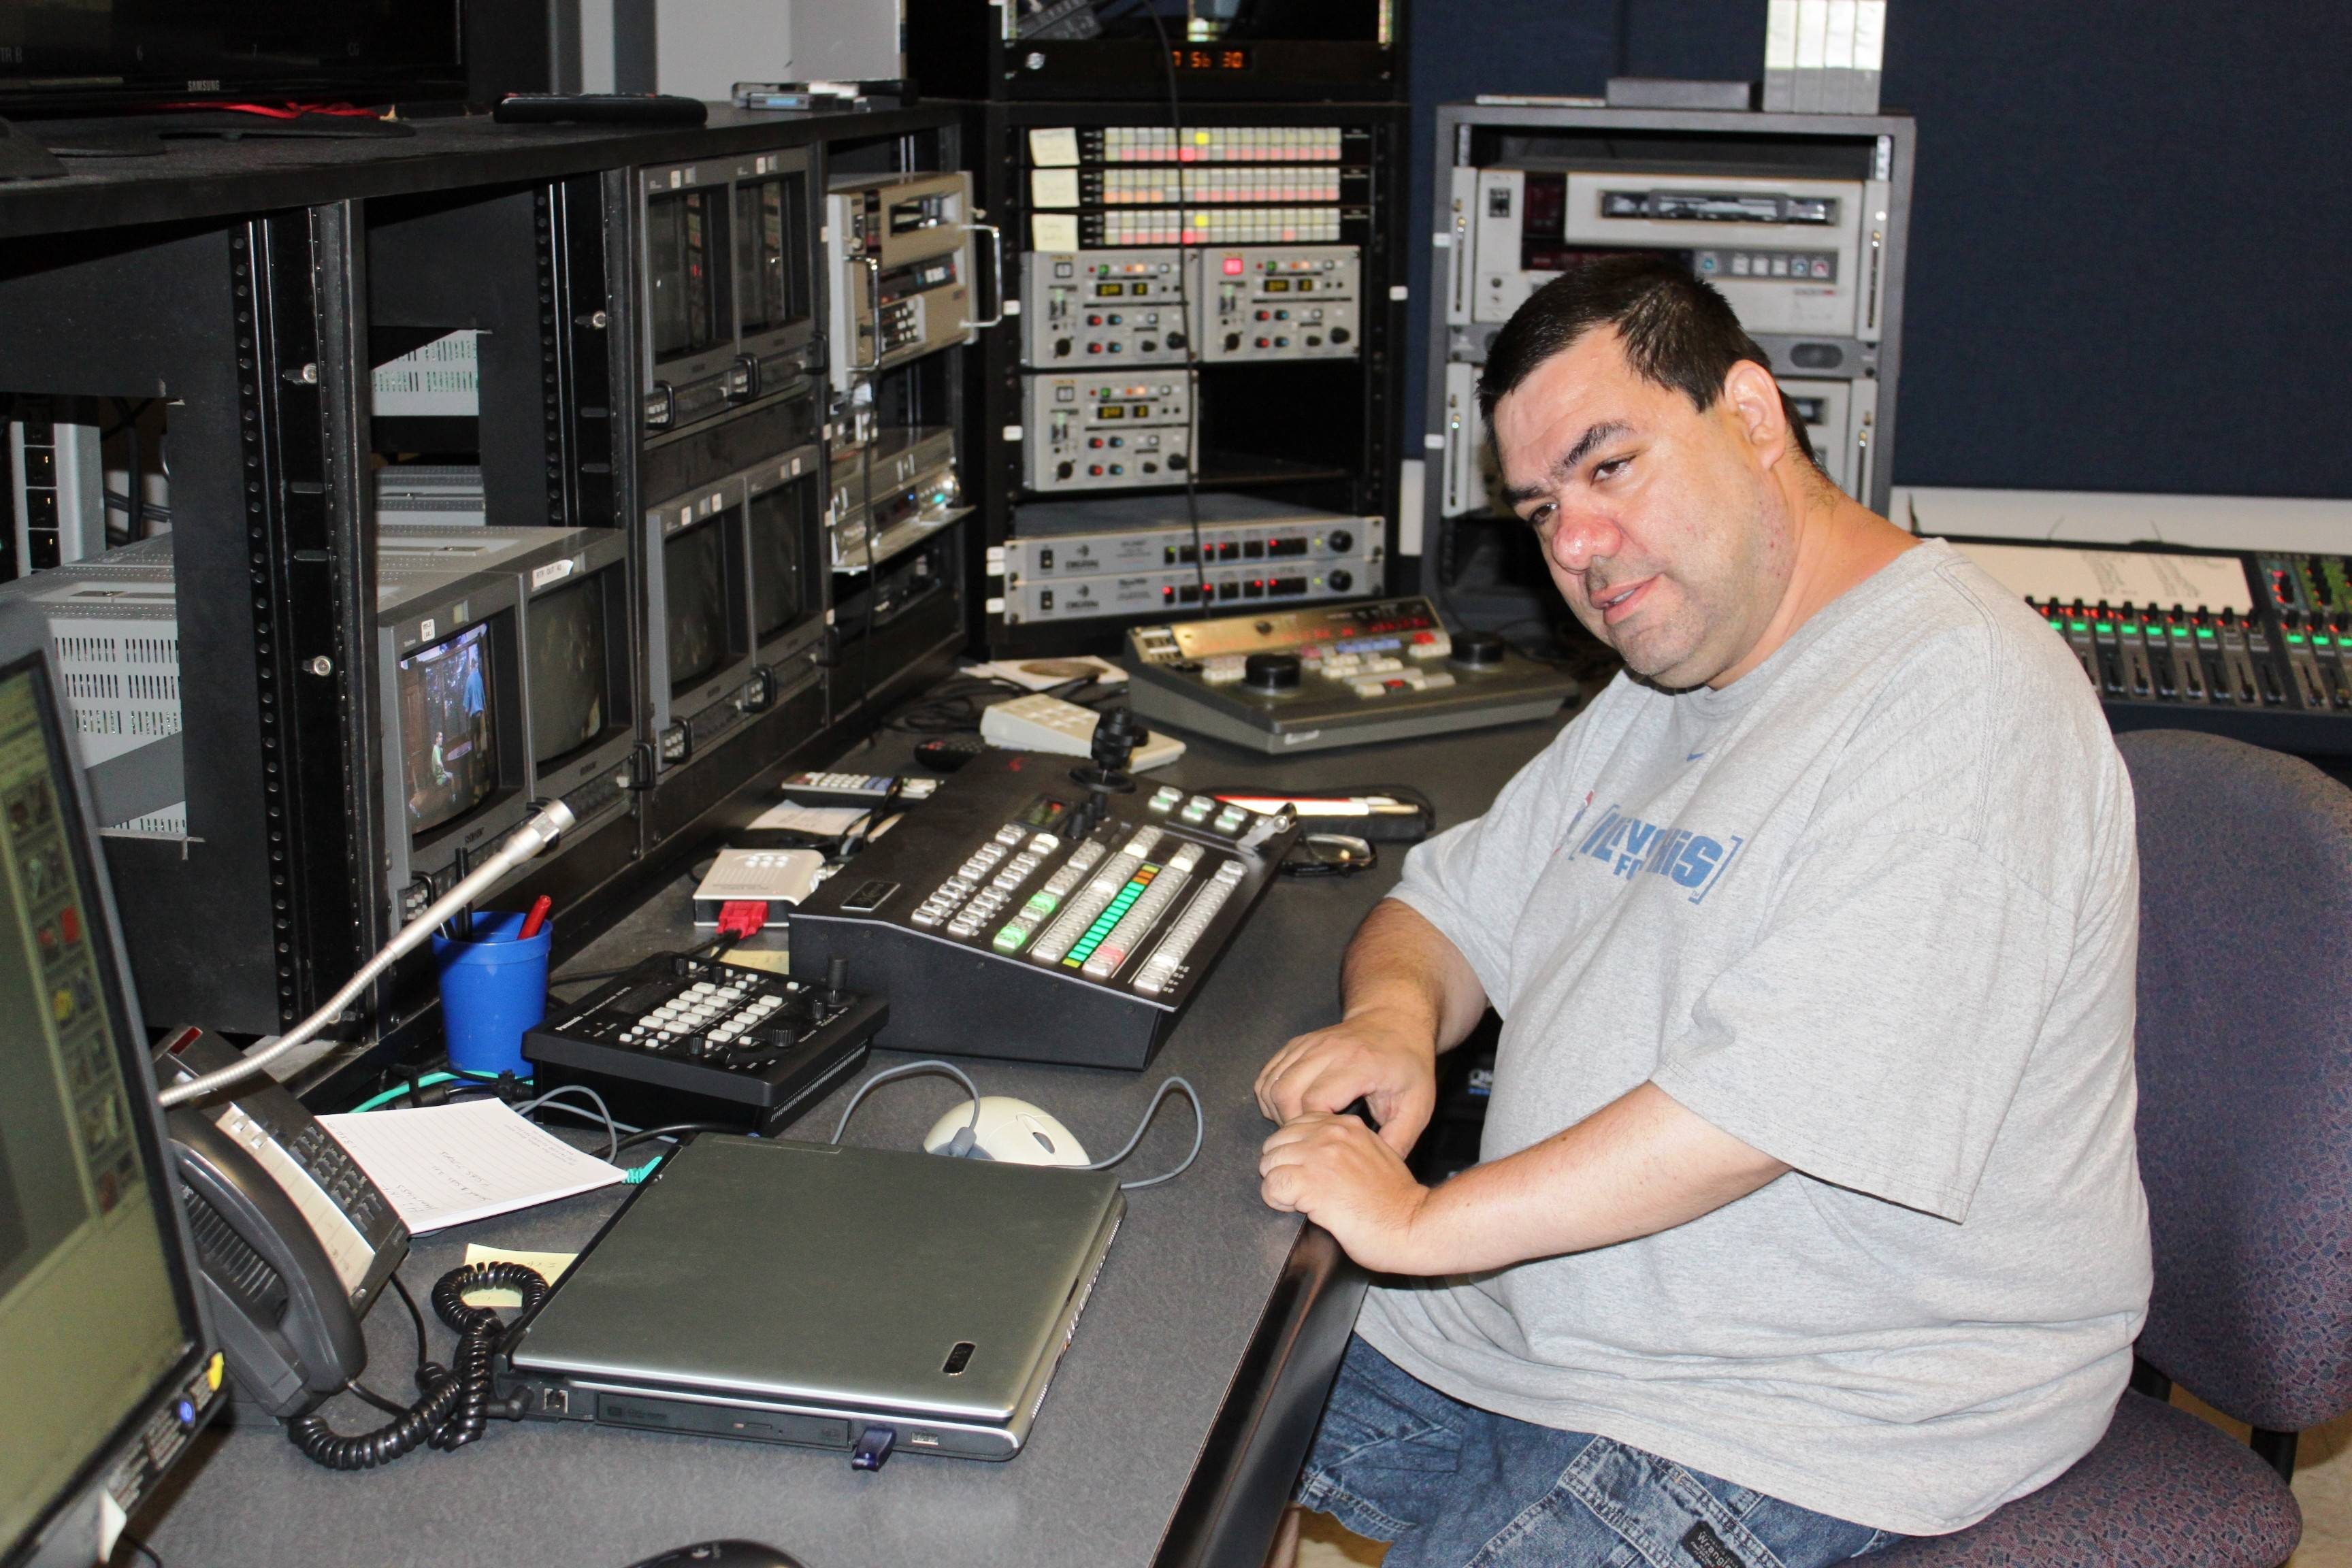 Jeremy Schumann of Lombard works at the editing board at ACTV in Addison as part of a new NEDSRA program to introduce participants to how an actual TV studio works.